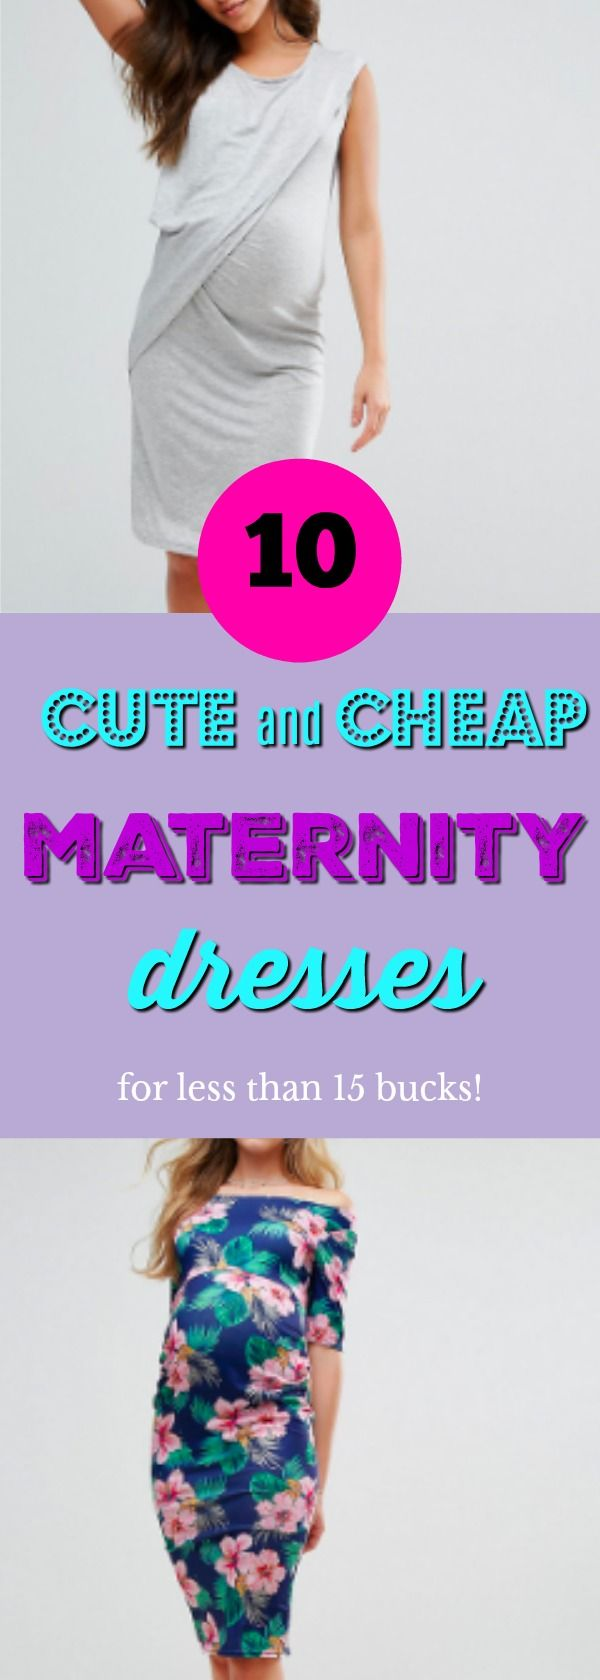 Maternity clothing doesn't have to be expensive! Check out these super stylish and affordable maternity dresses #maternity #dresses #maternityclothing